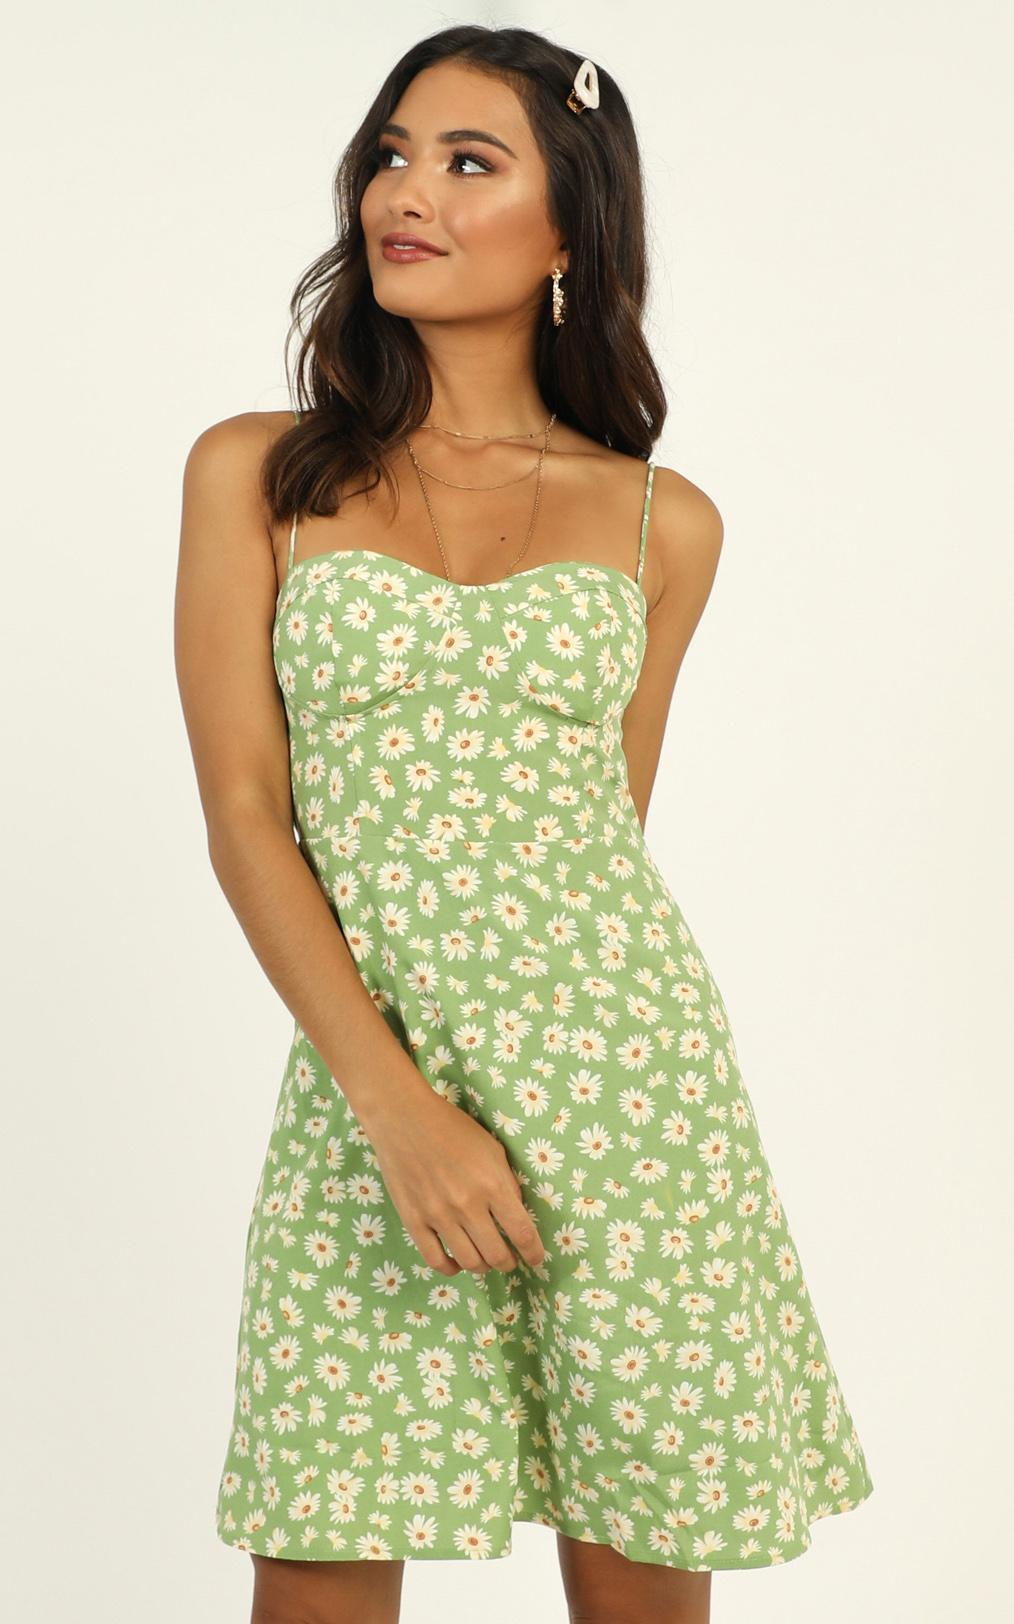 Naturally Sweet dress in green floral - 14 (XL), Green, hi-res image number null